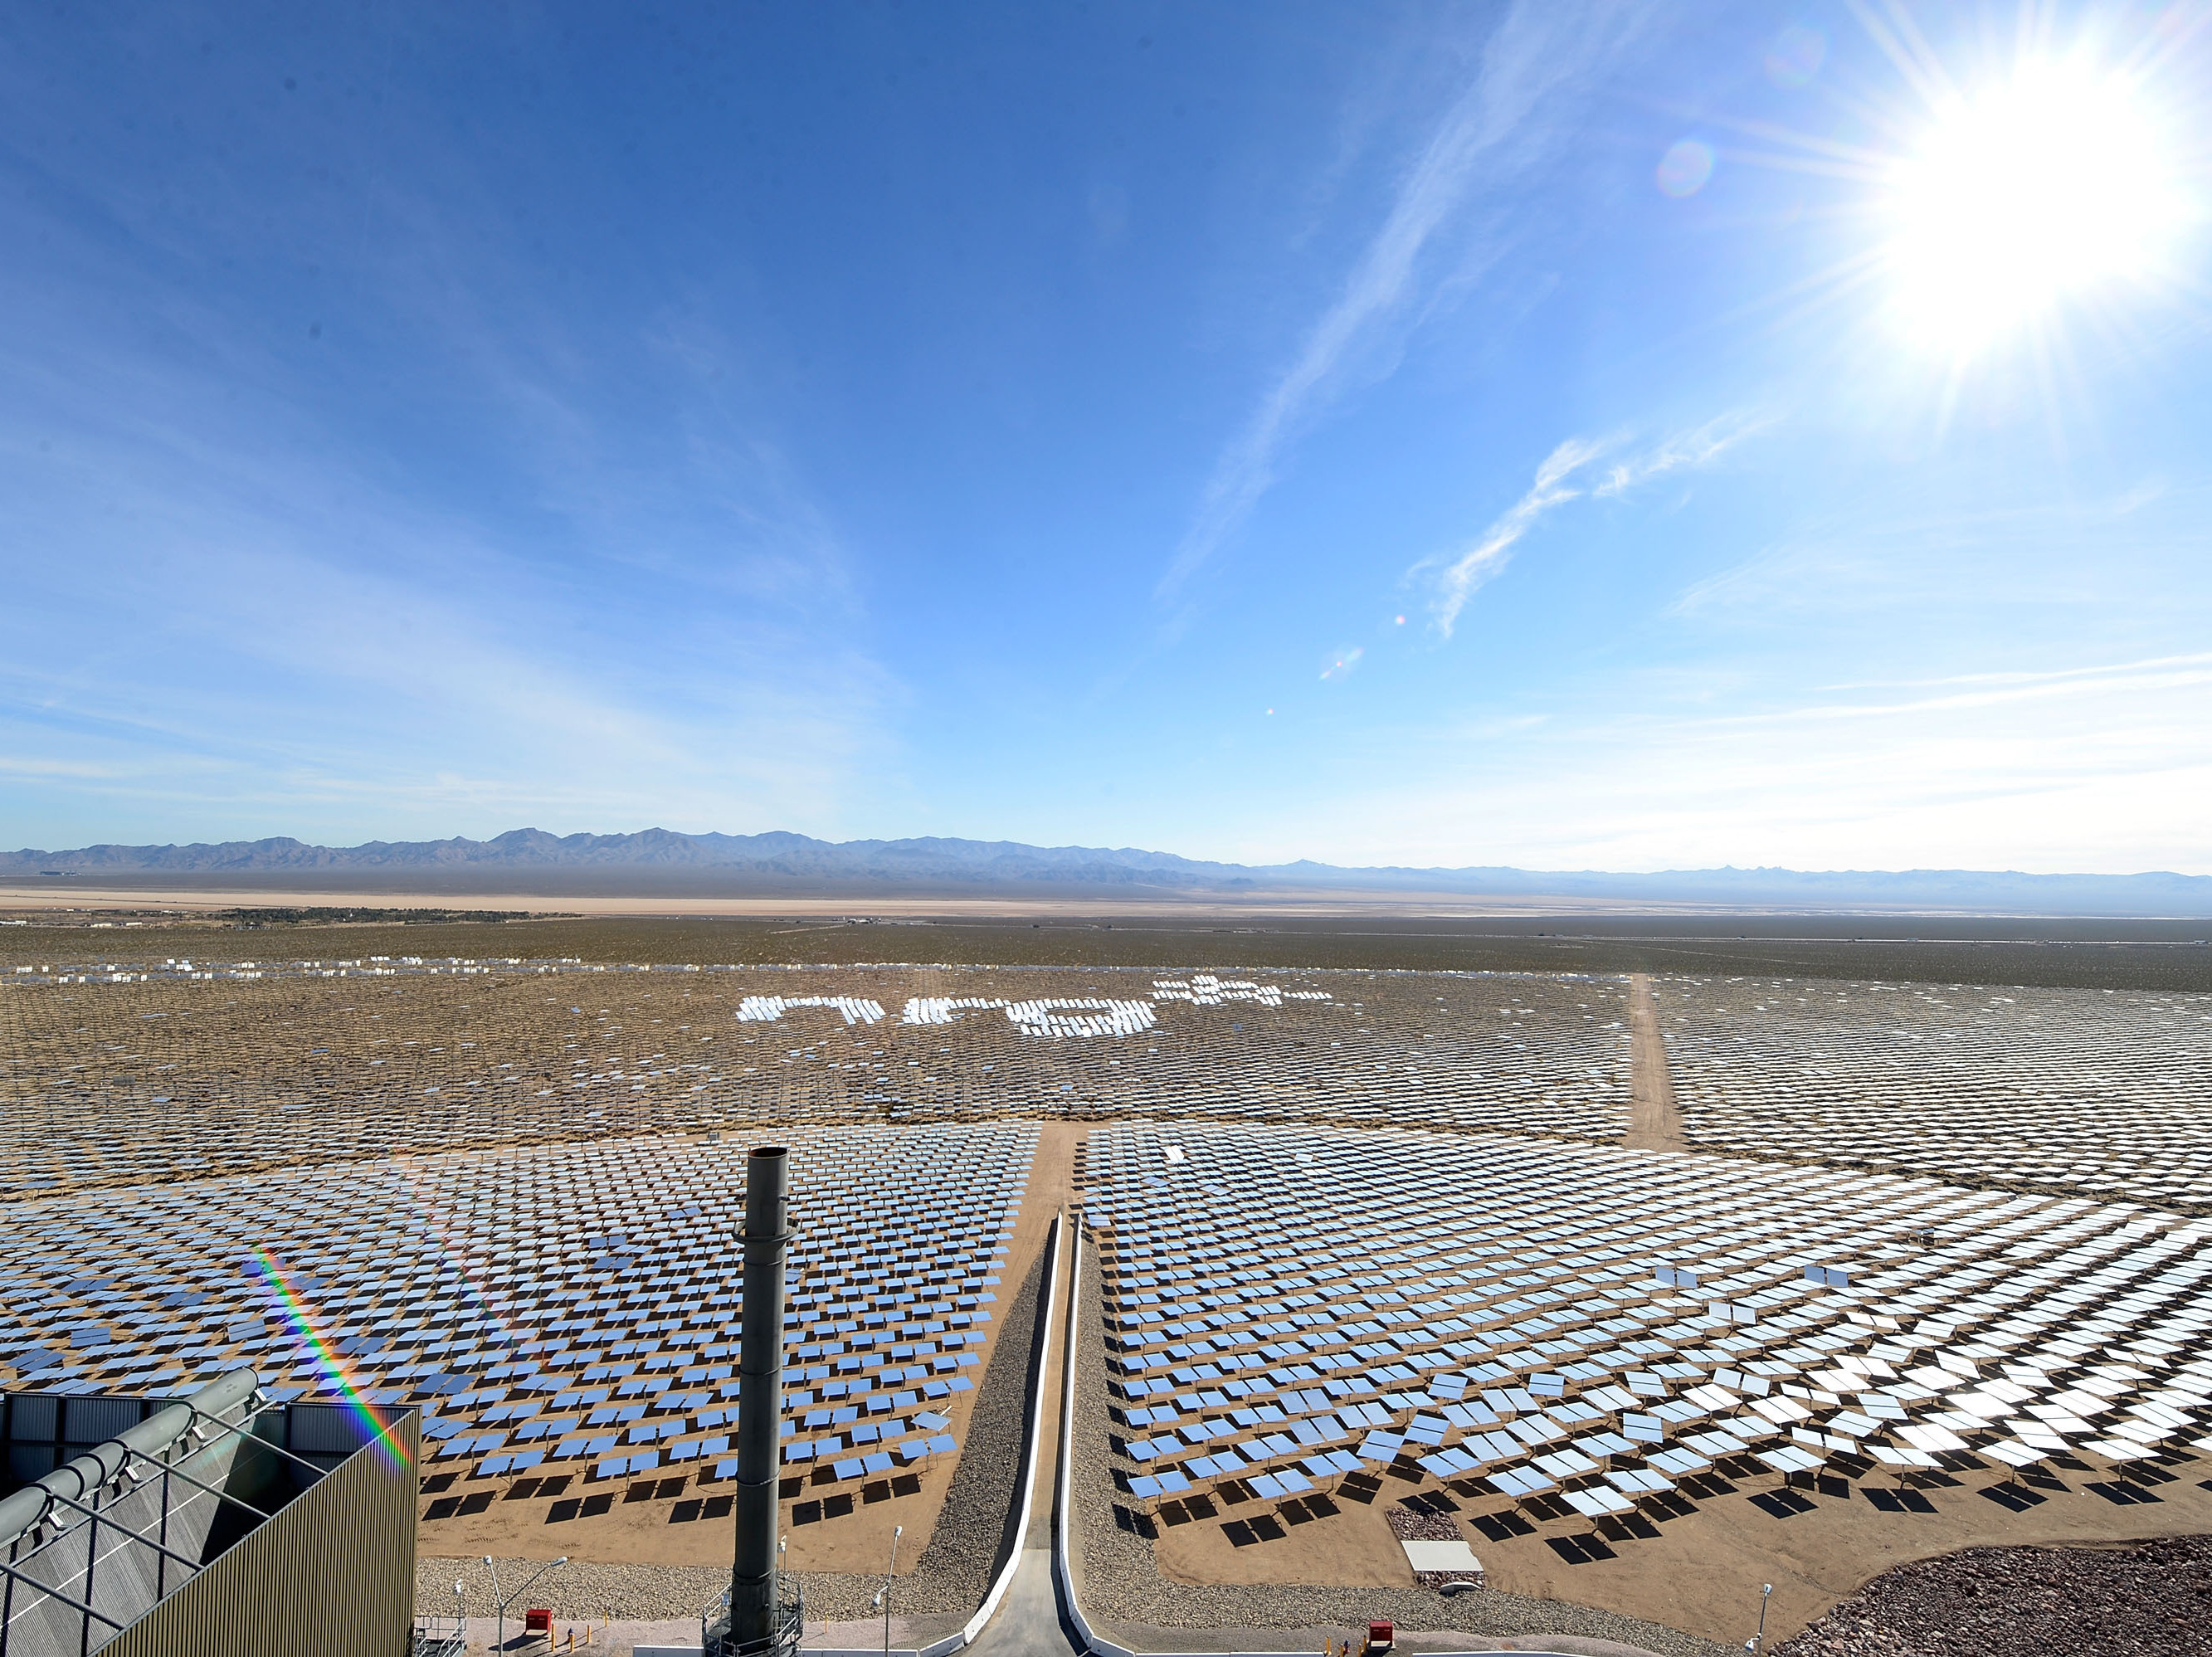 Shiny And New: World's Largest Solar Plant Opens In California